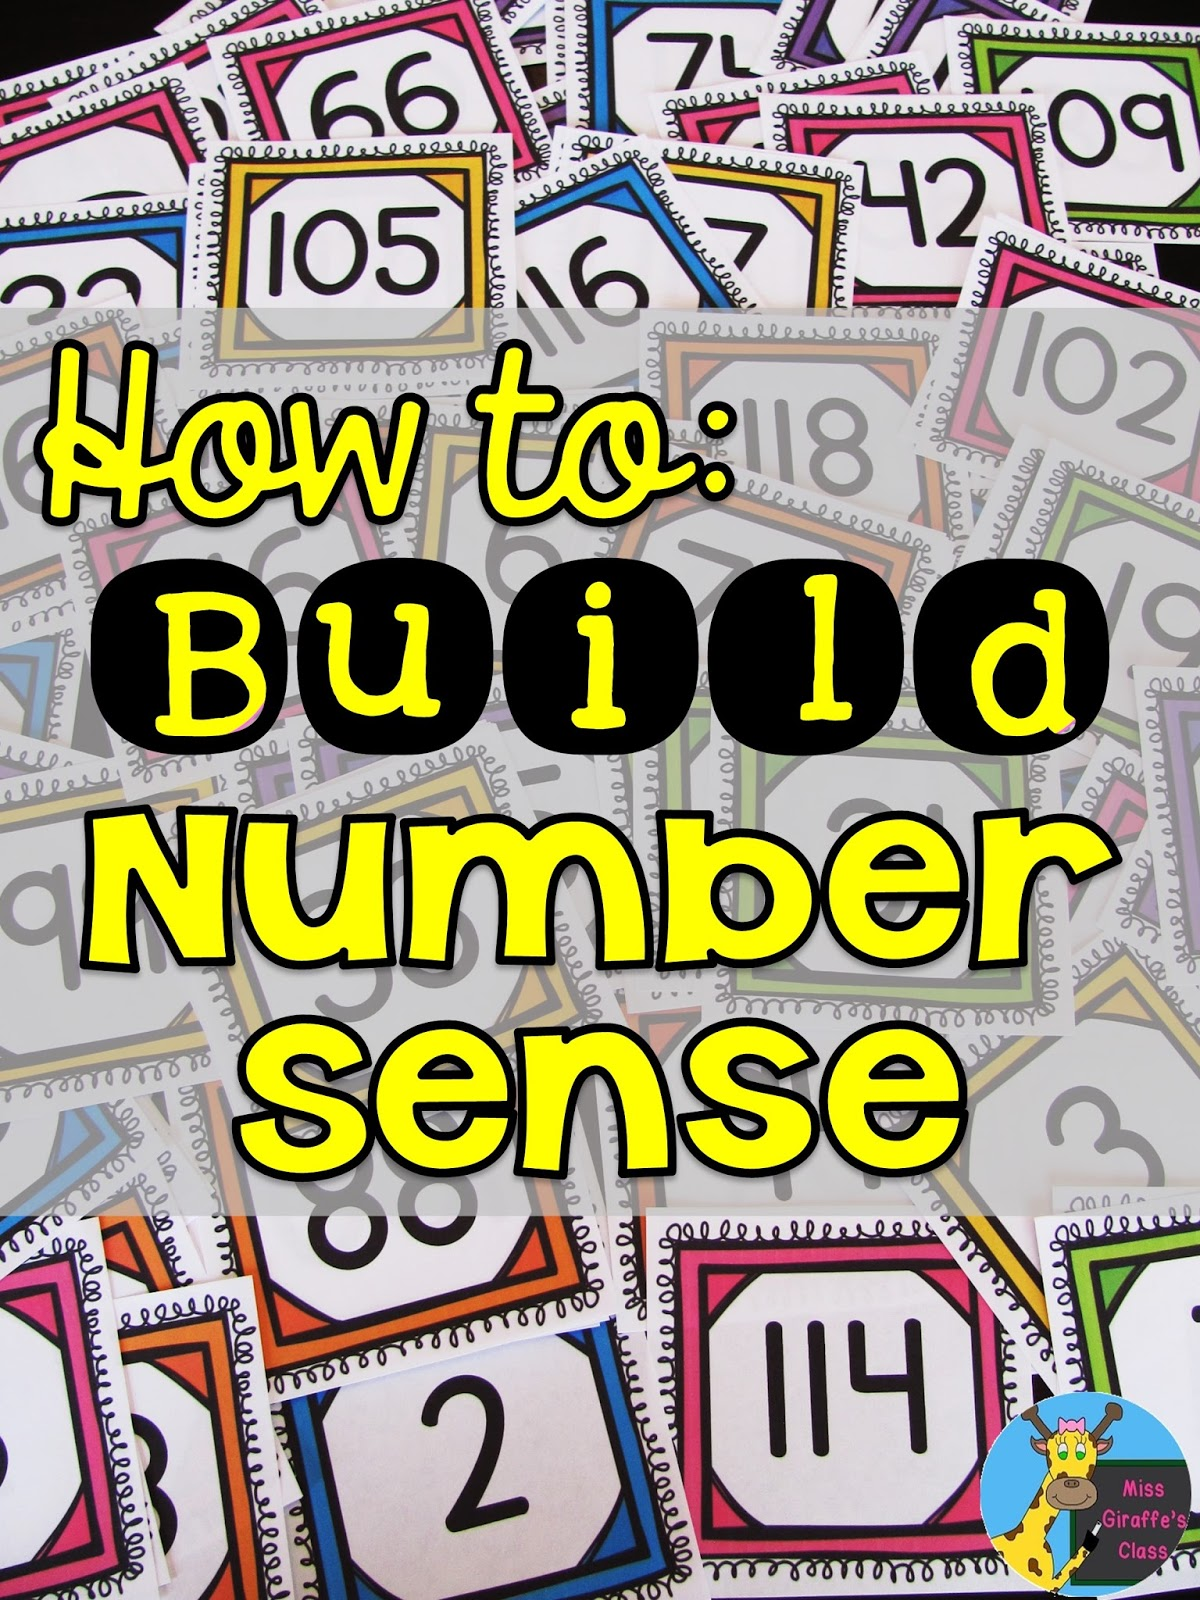 Miss Giraffe's Class: Building Number Sense in First Grade [ 1600 x 1200 Pixel ]